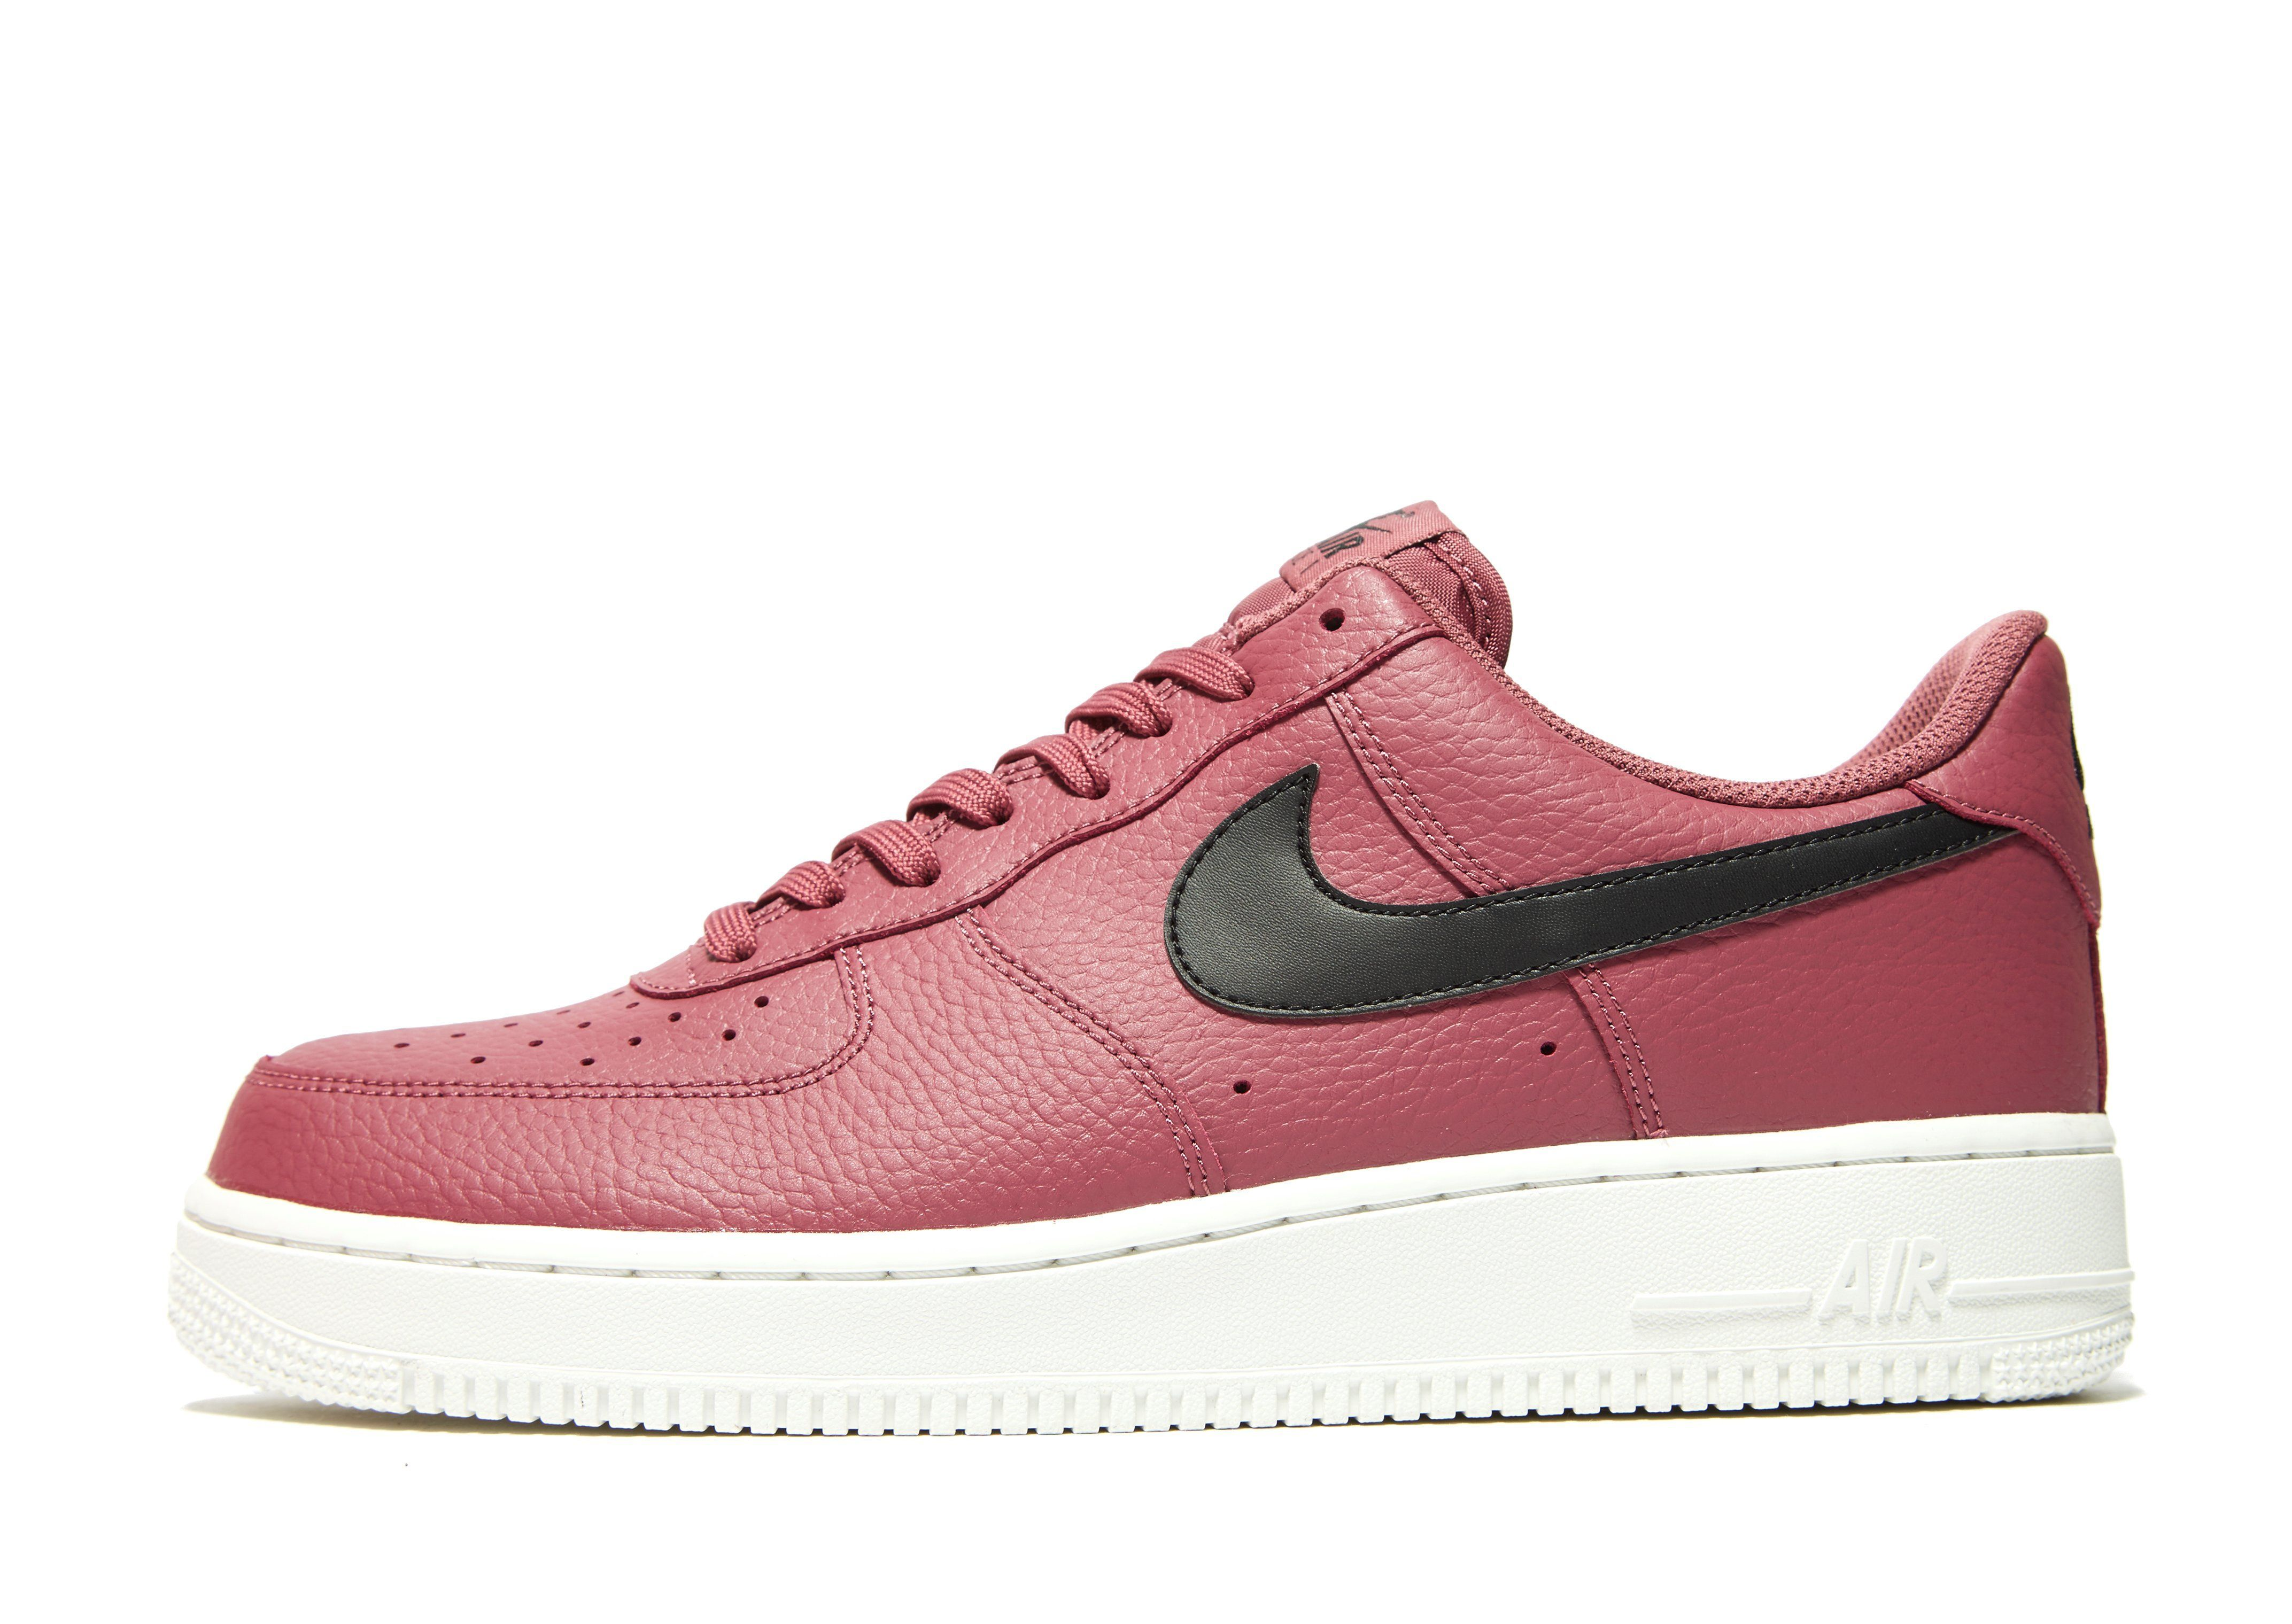 official photos d1ae3 417fb ... sports 817ca cf04c  denmark nike air force 1 low shop online for nike  air force 1 low with jd